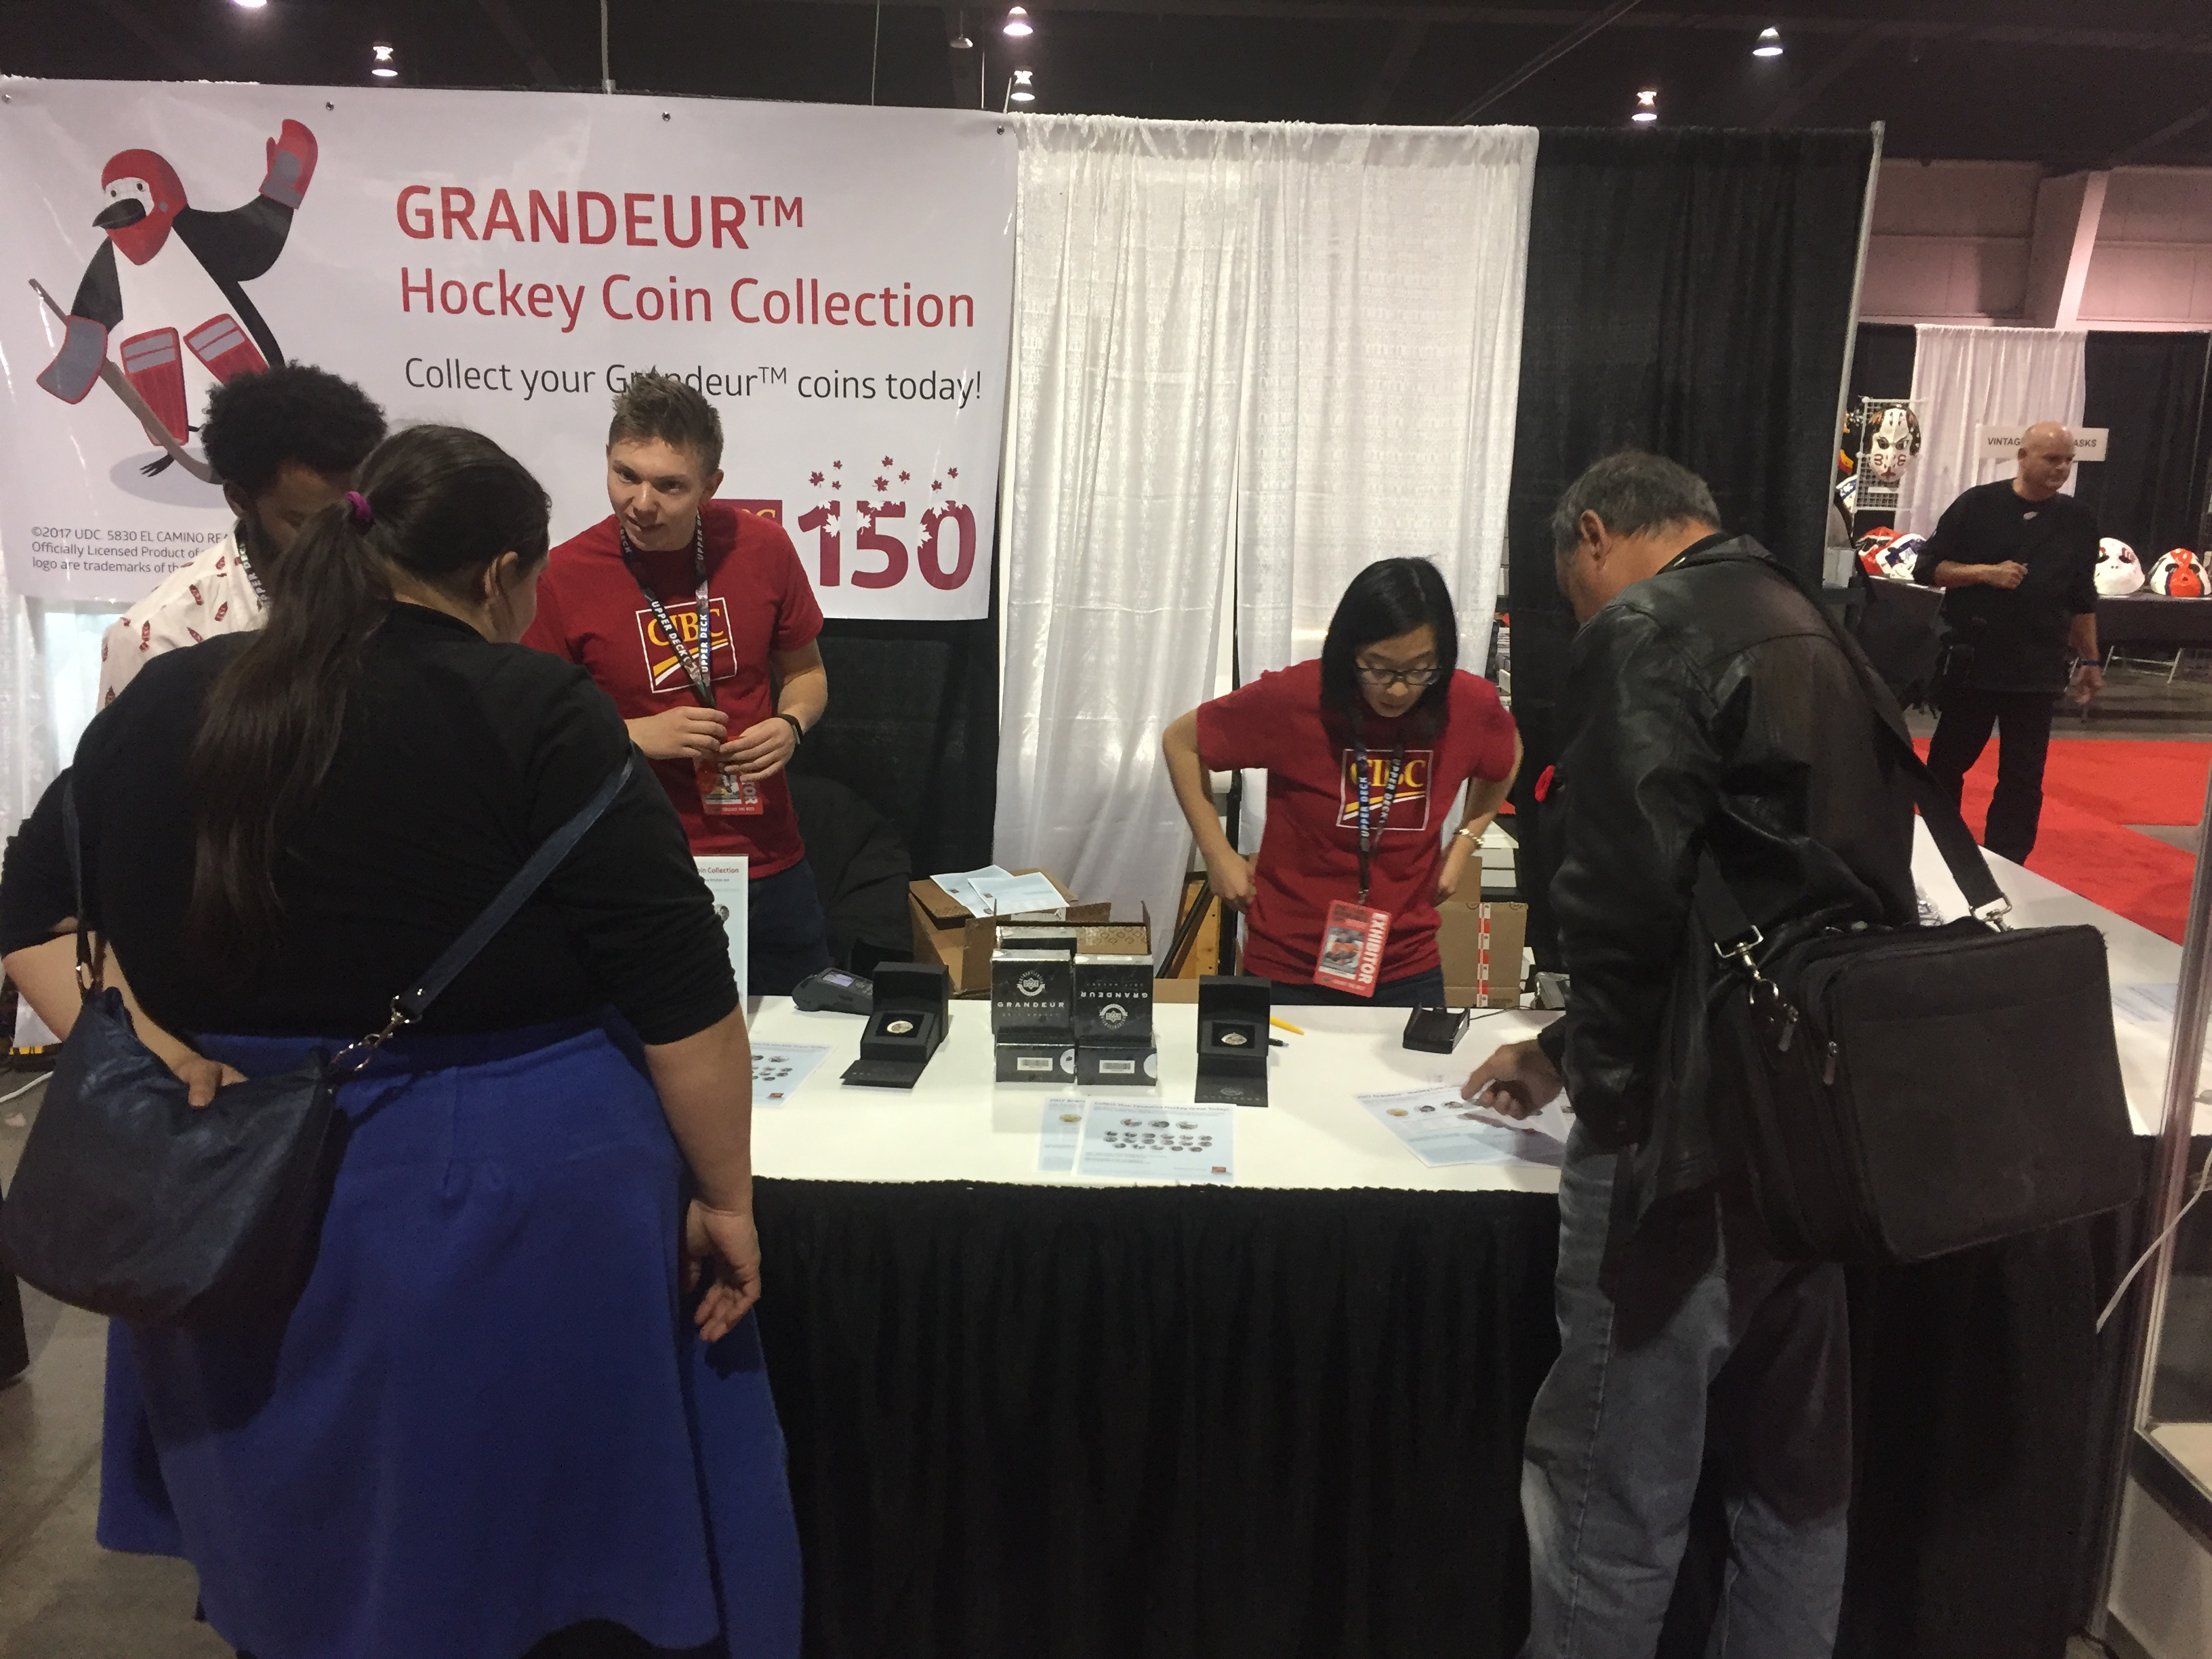 Grandeur-Upper-Deck-NHLPA-Hockey-Coins-CIBC-Booth-Expo-Collector-Interest-Gift-Idea